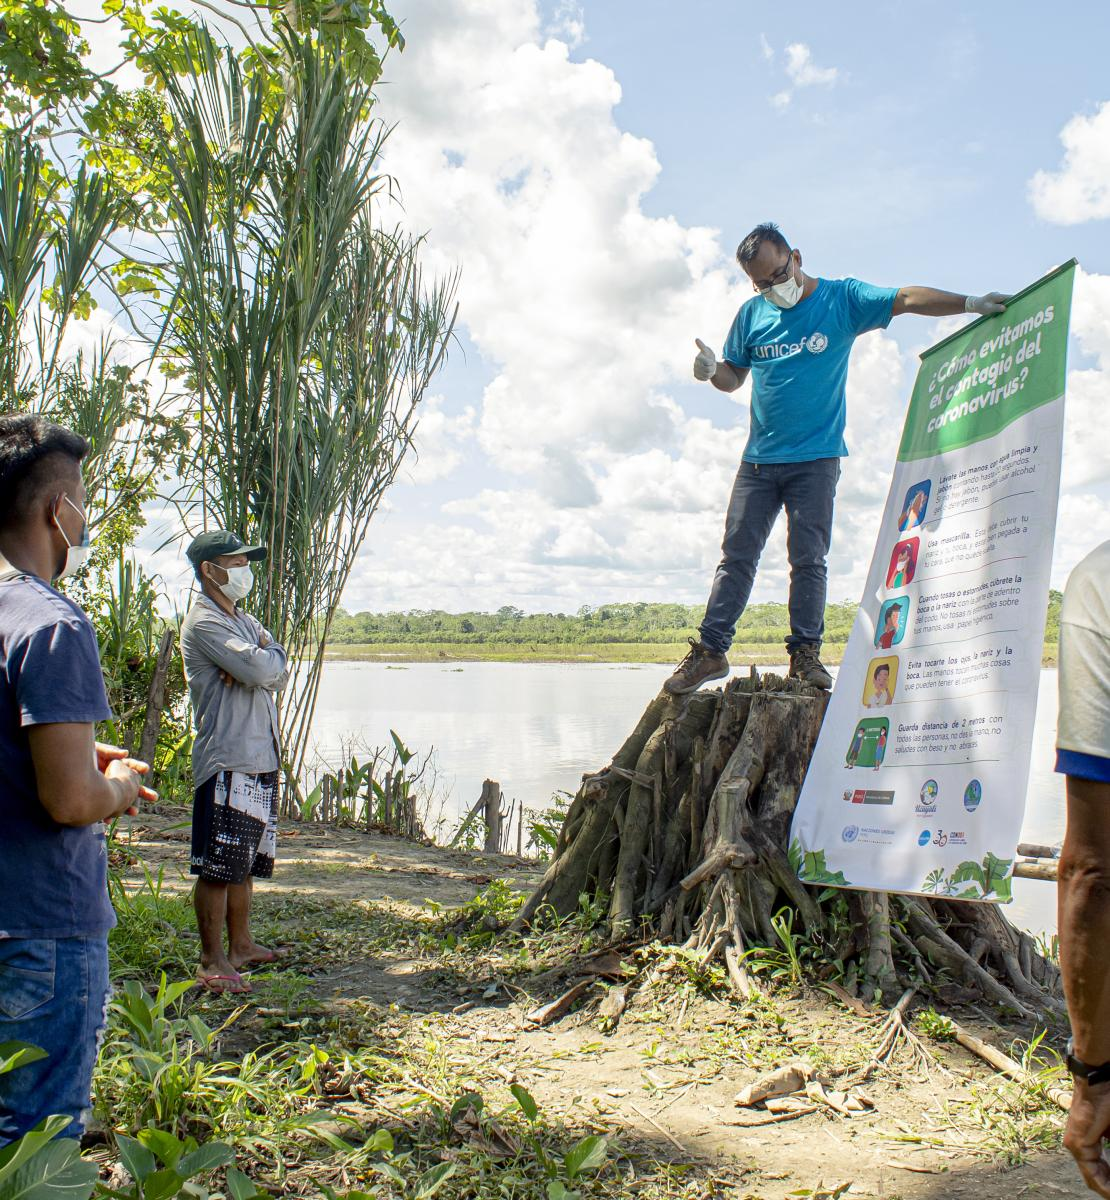 Fredy Vargas, UNICEF Community Engagement Consultant, discusses safe hygiene practices with indigenous community leaders in the Peruvian Amazon.